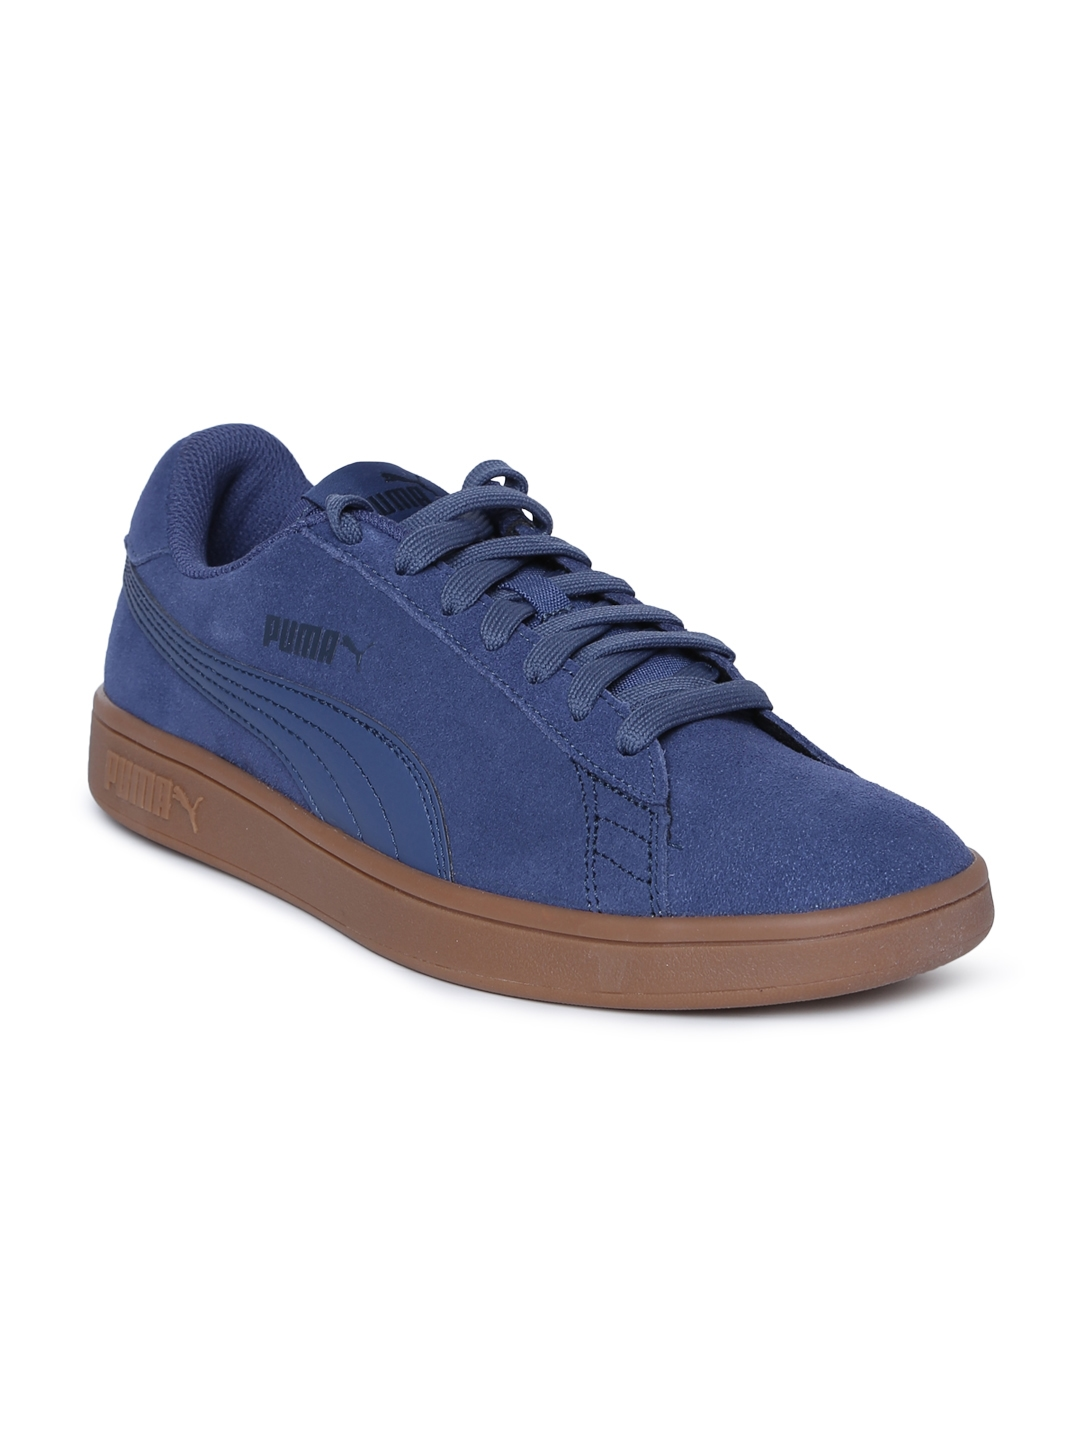 b3be7b6b117f Buy Puma Men Blue Puma Smash V2 Suede Sneakers - Casual Shoes for ...